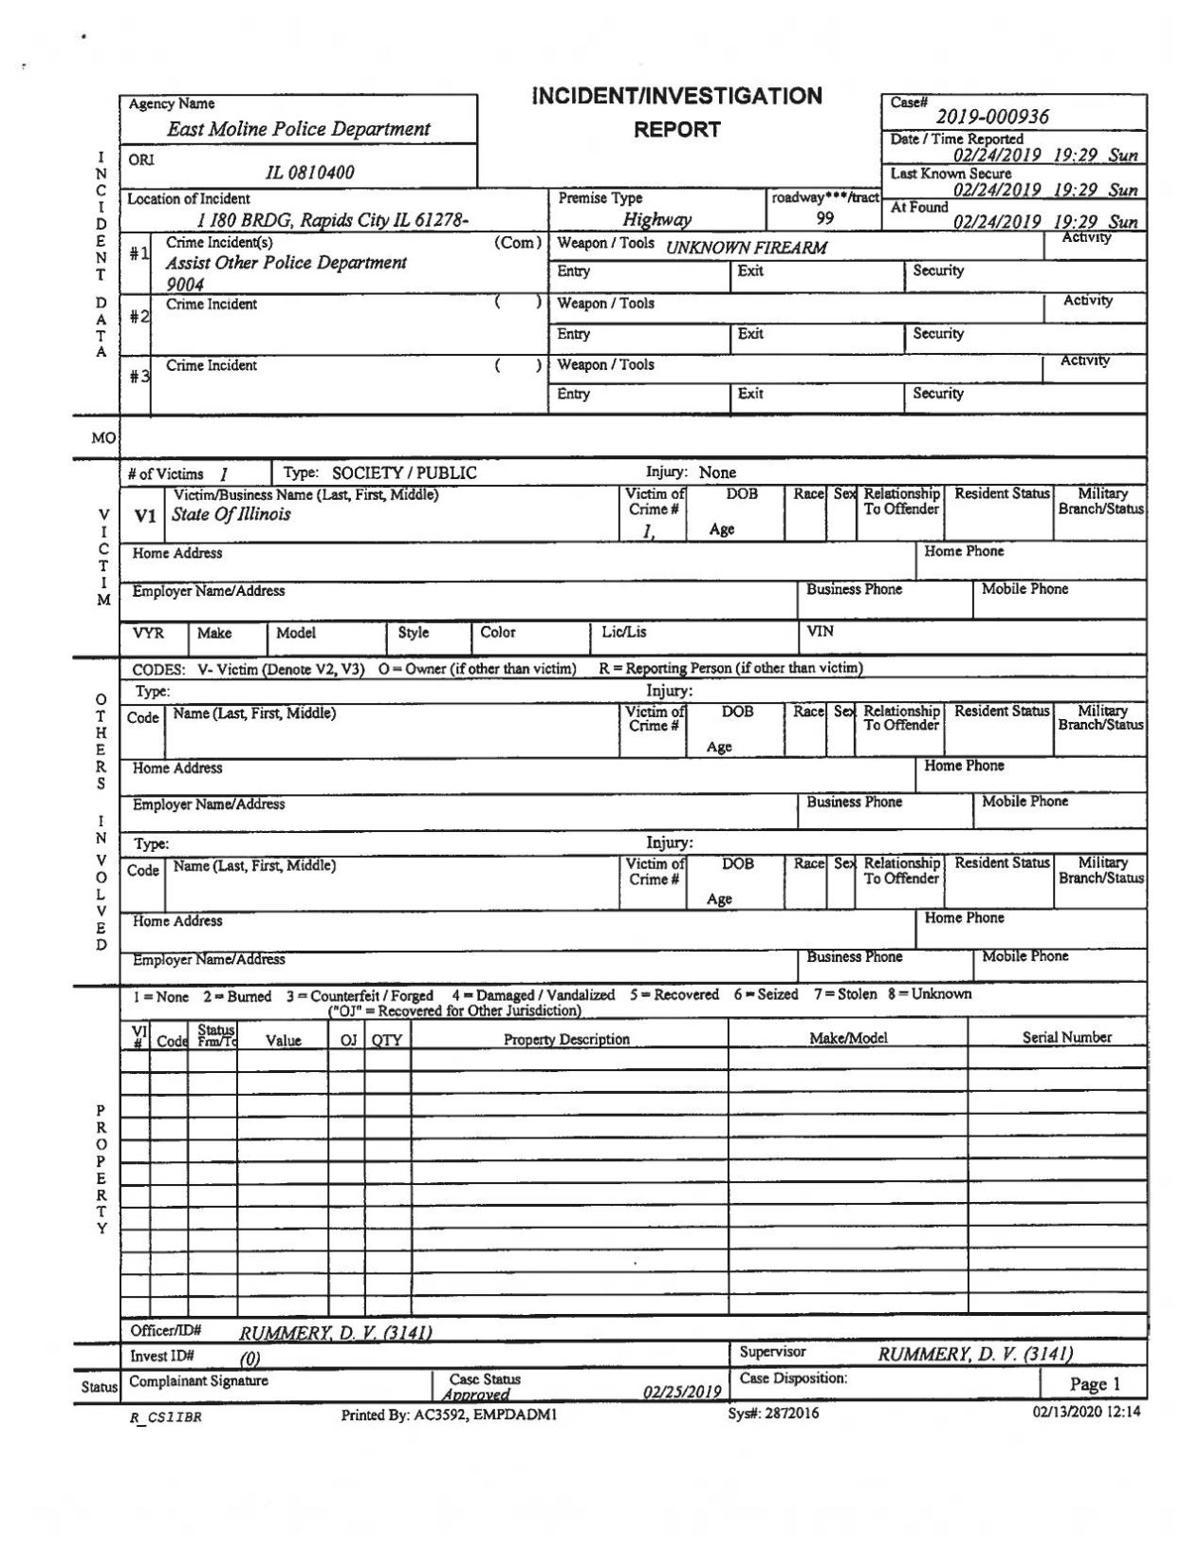 East Moline Police Report 2/24/19